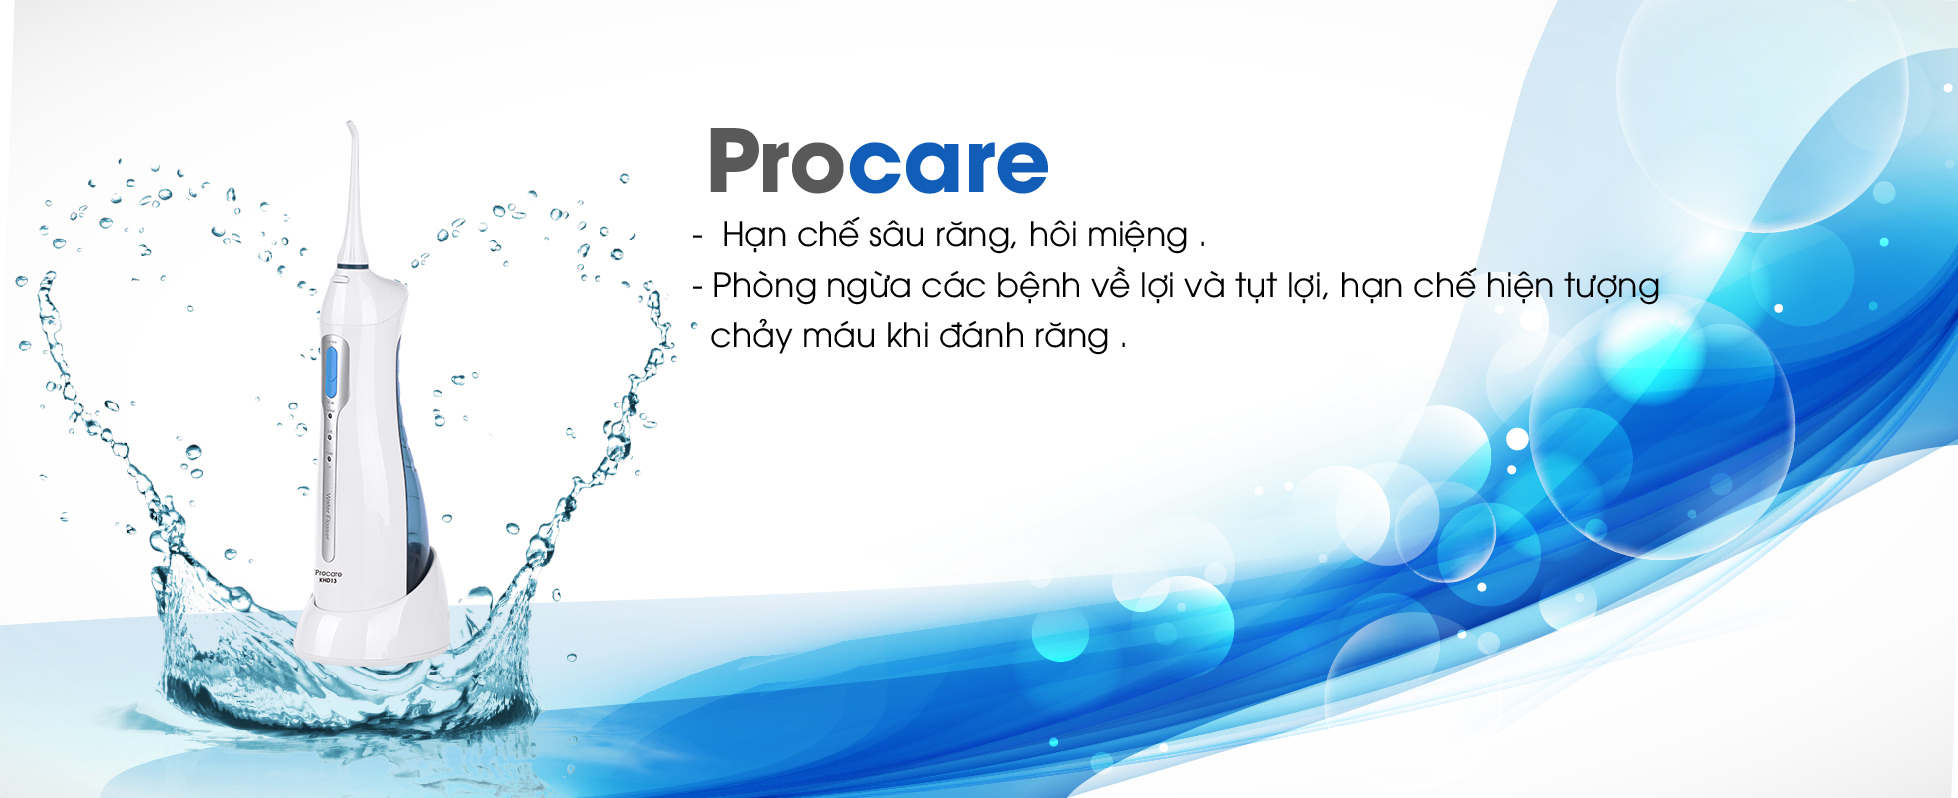 http://procare.asia/may-tam-nuoc-du-lich-khd13